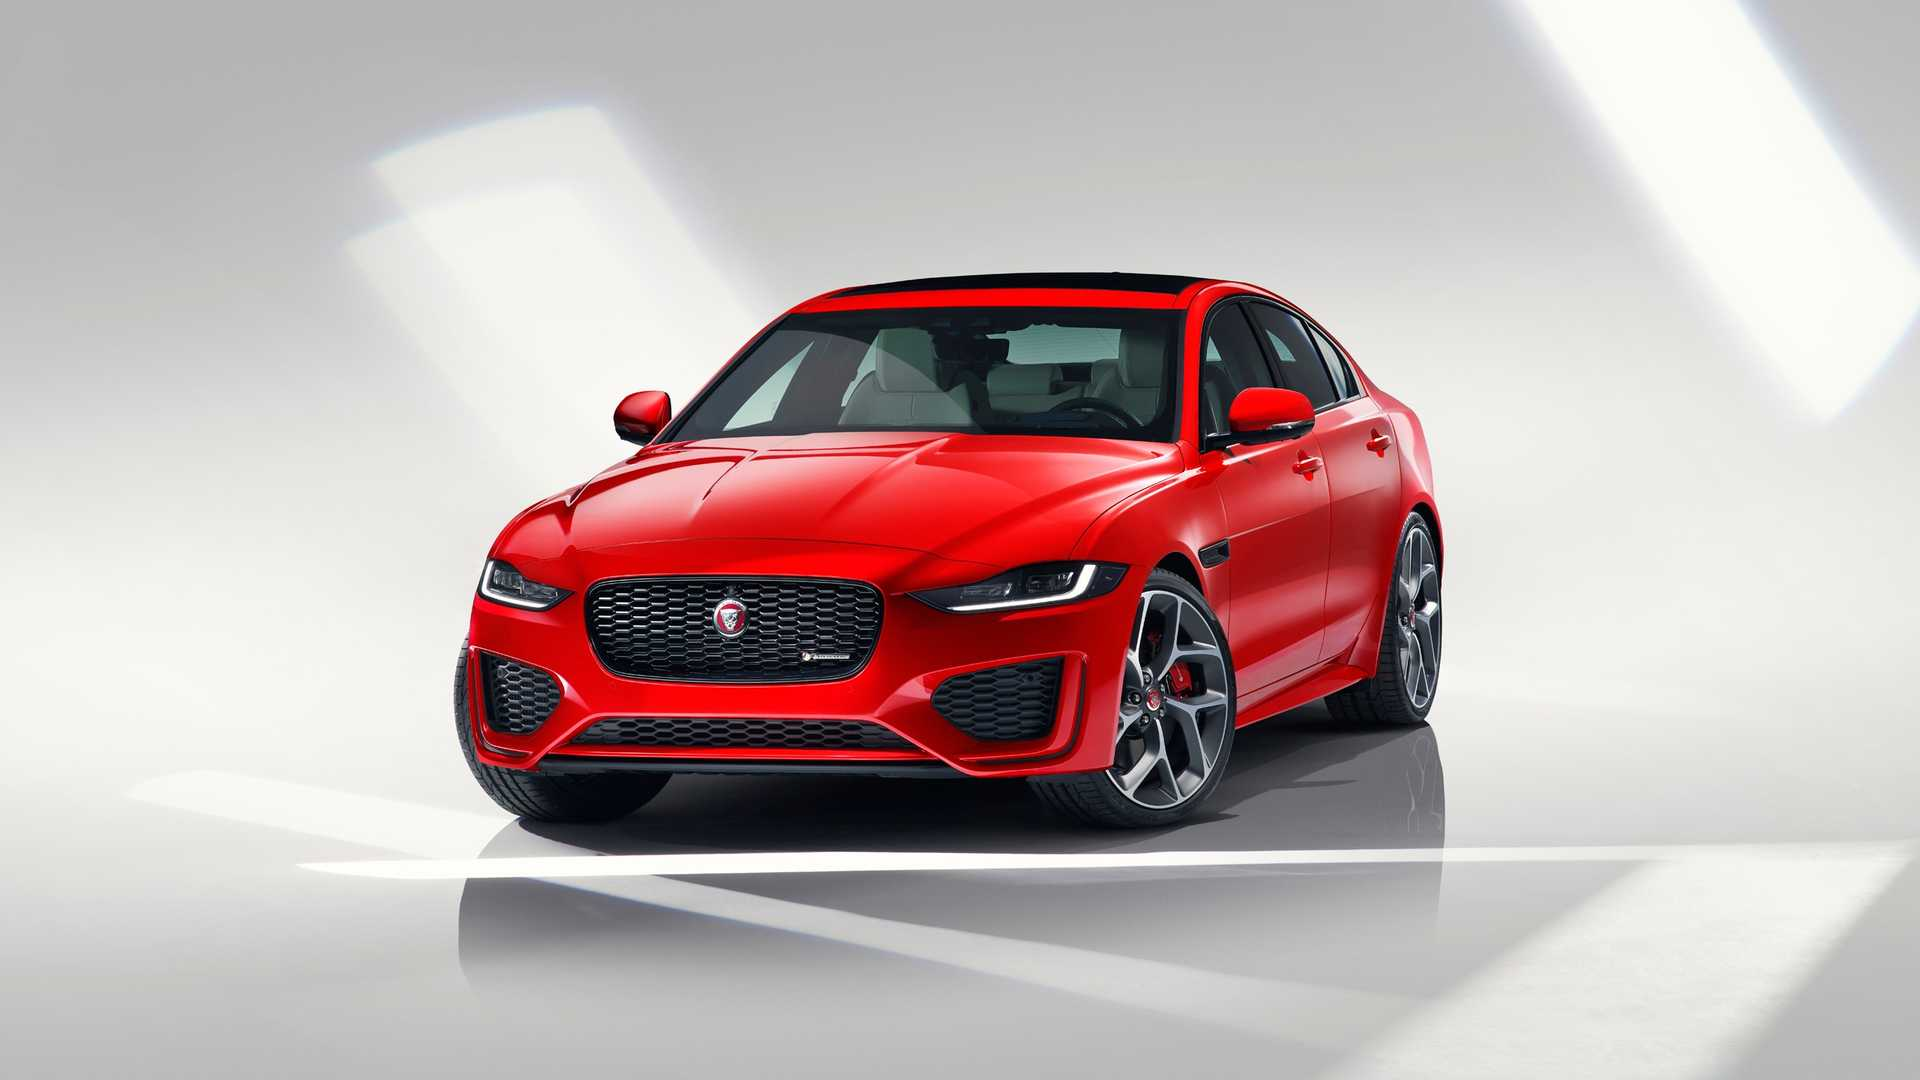 85 All New Jaguar Xe 2020 Brasil New Concept